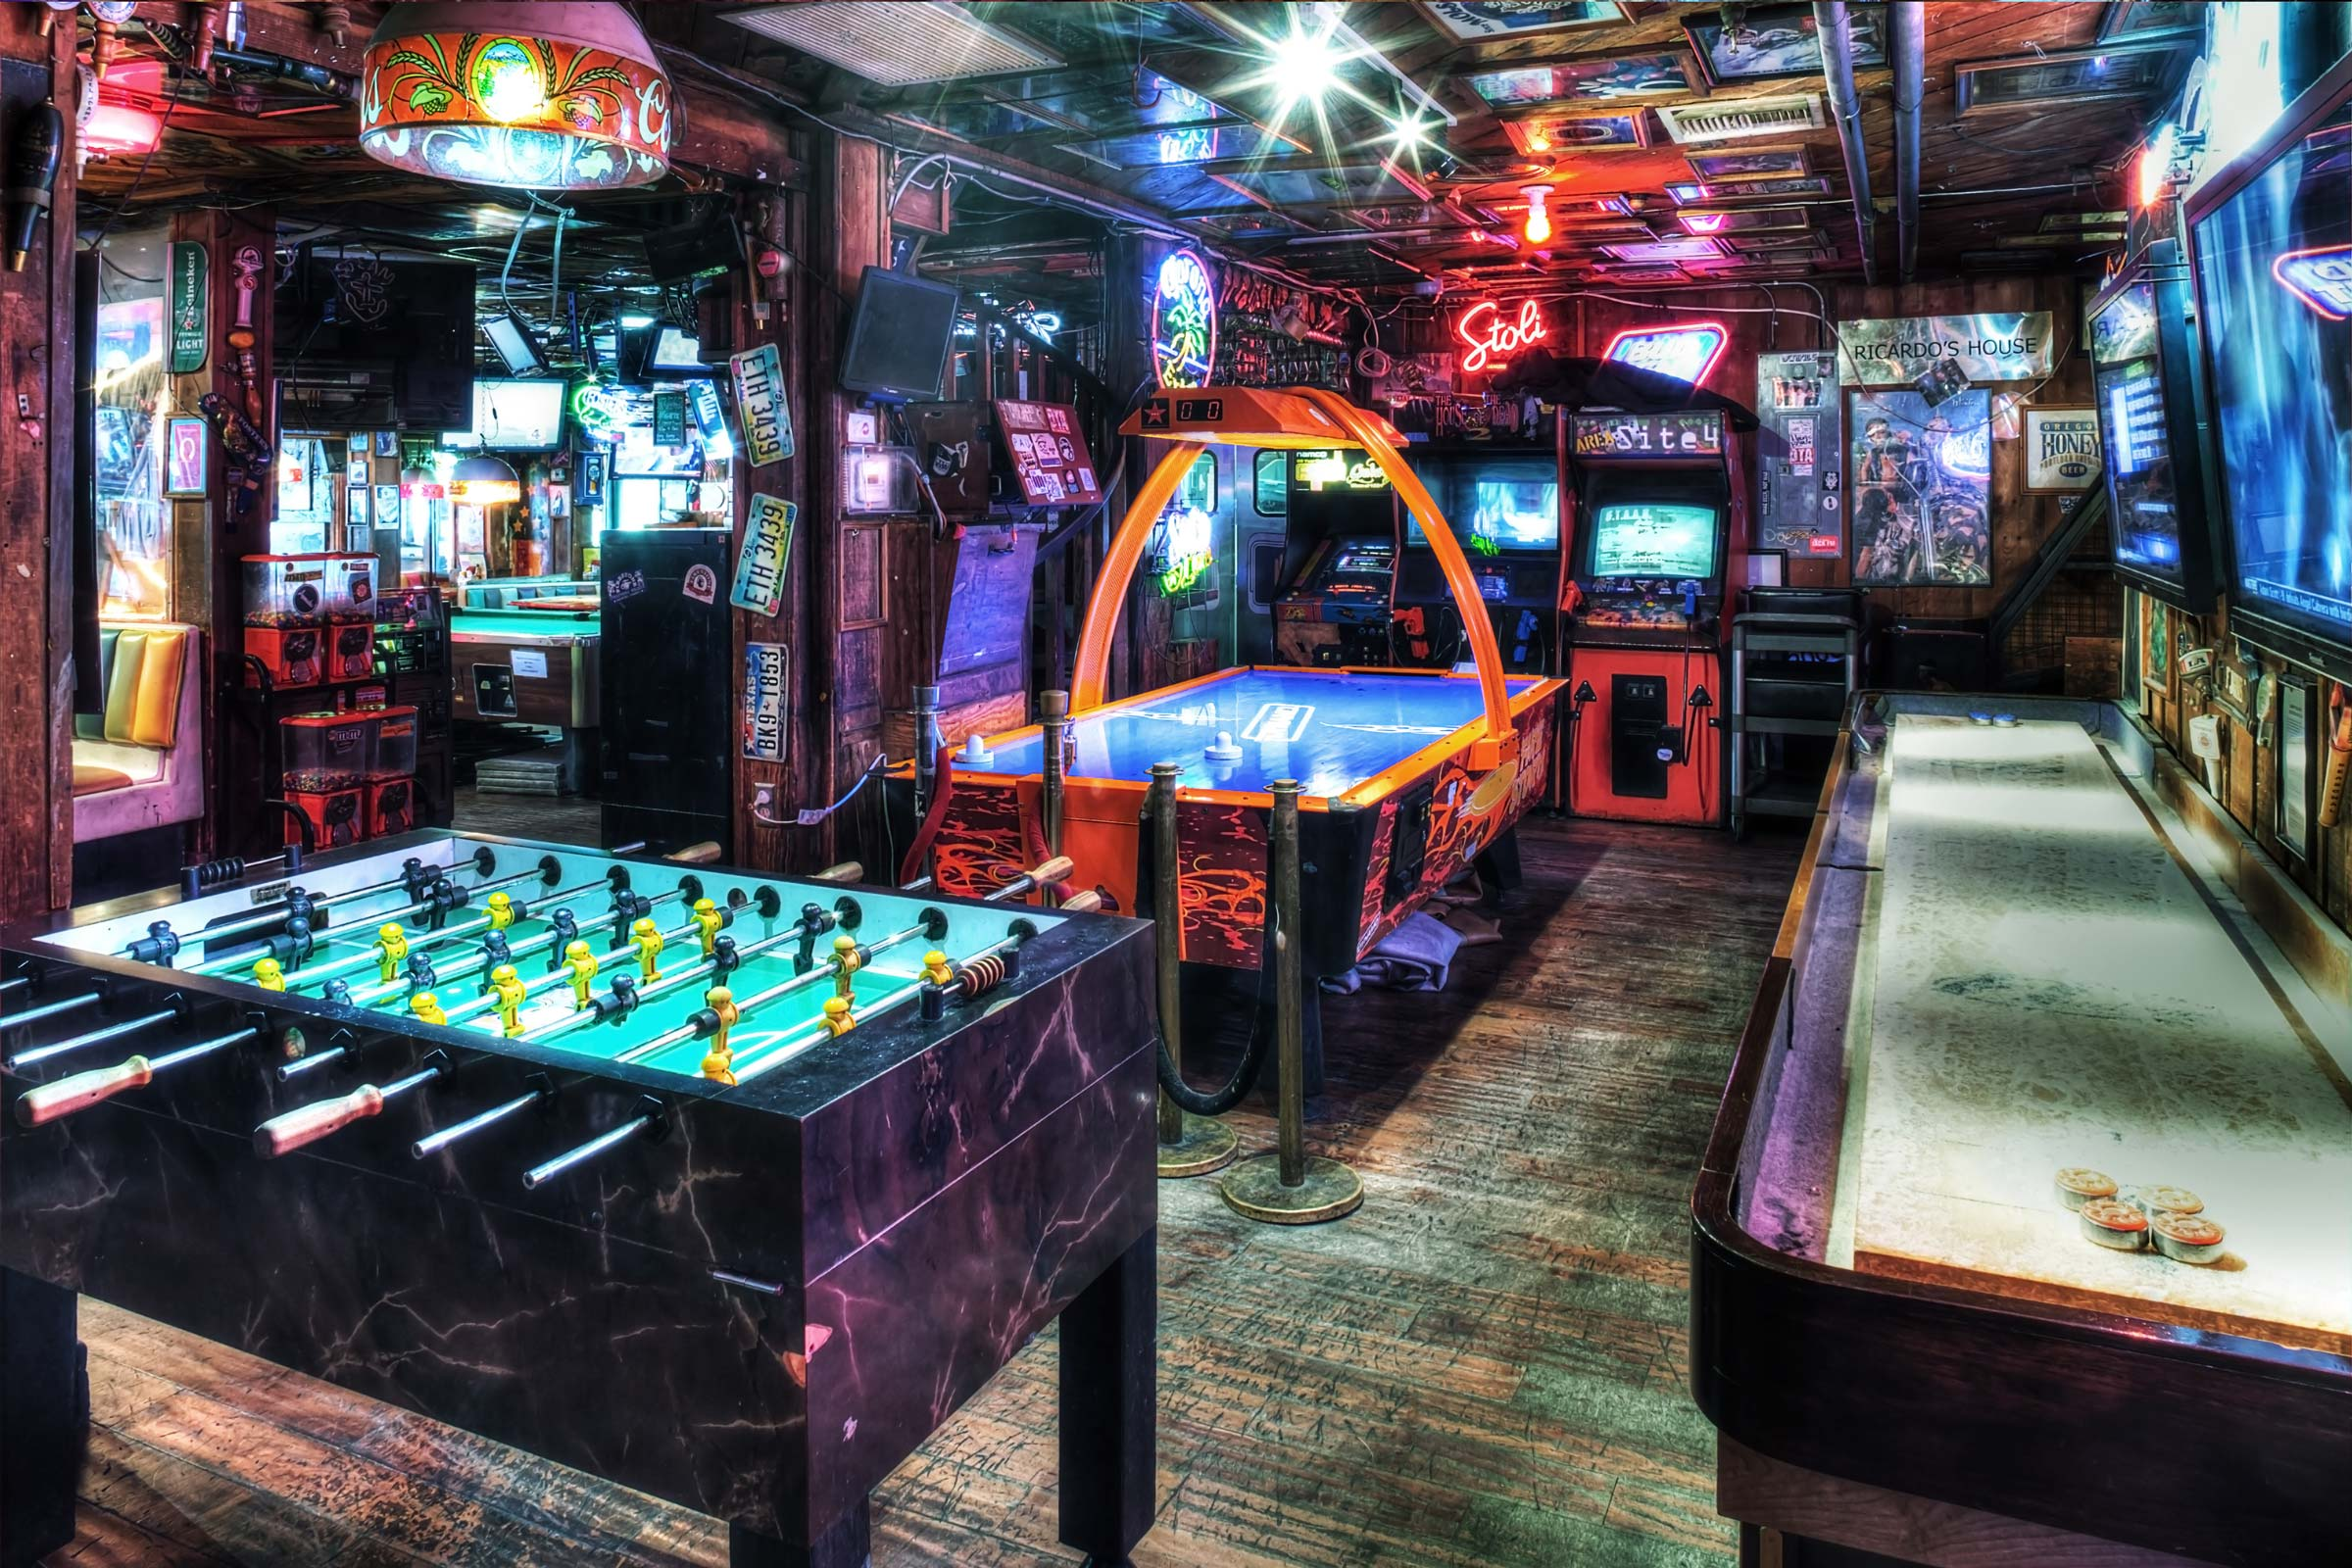 West Hollywood air hockey, shuffleboard and foosball